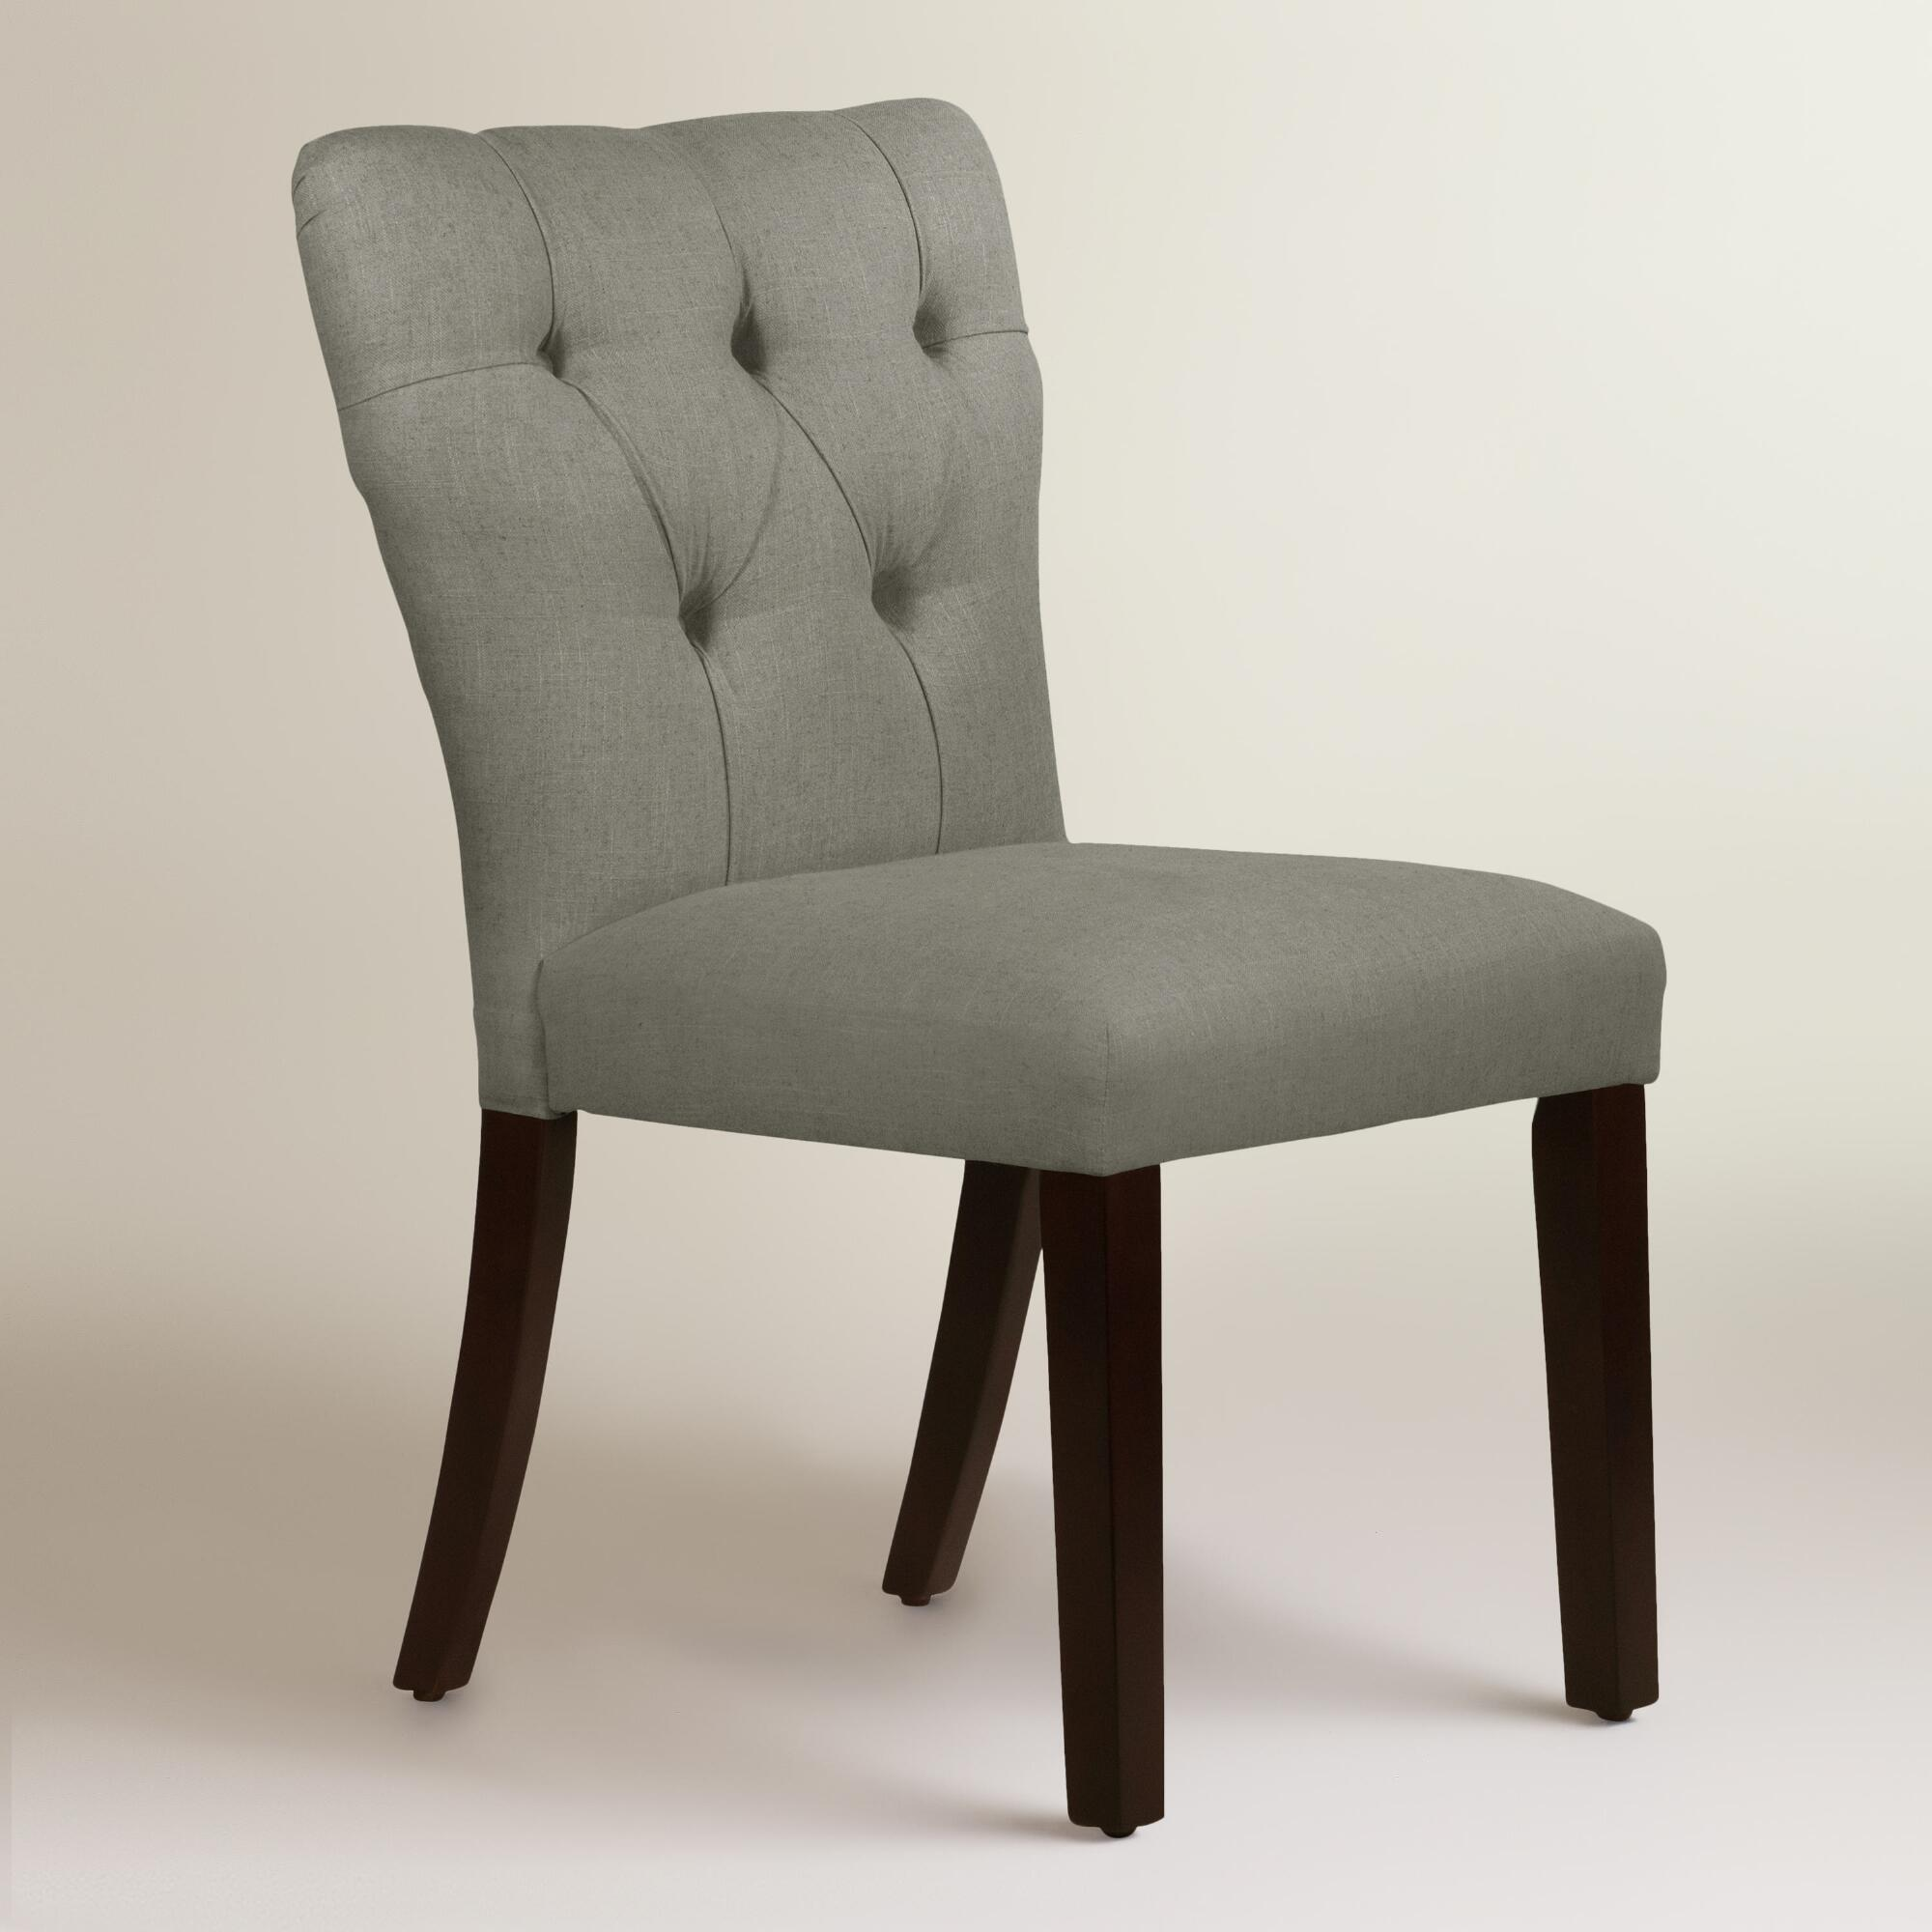 Overstock Chairs | Tufted Dining Chair | Parson Dining Chairs